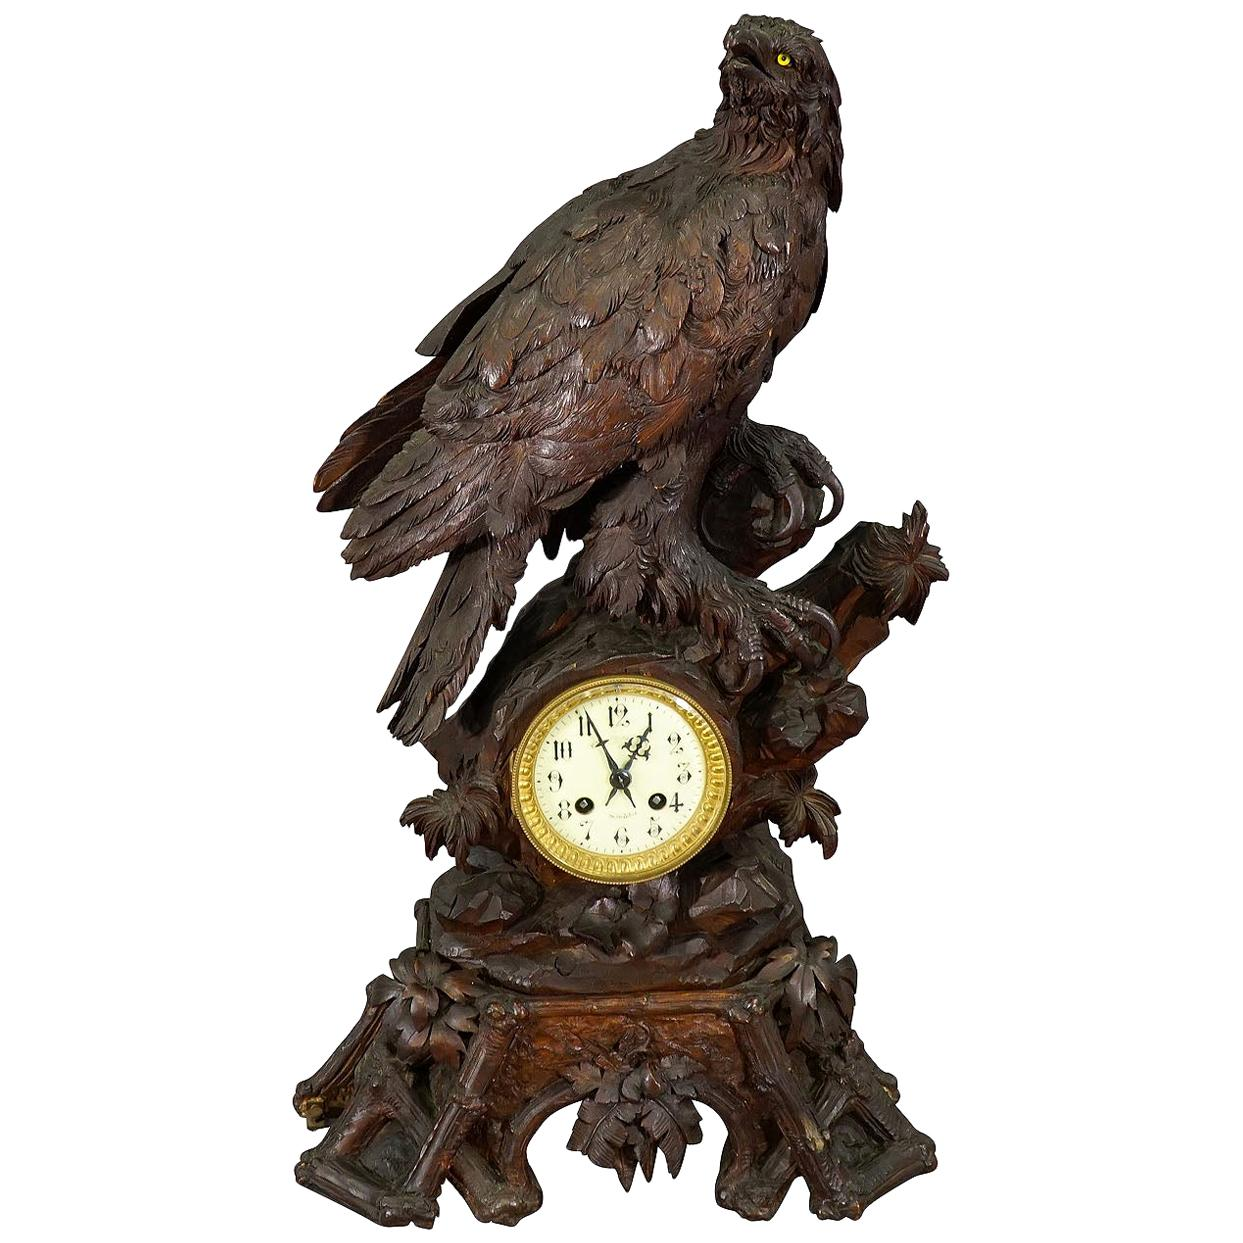 Antique Wooden Mantel Clock with Eagle, Swiss 1900